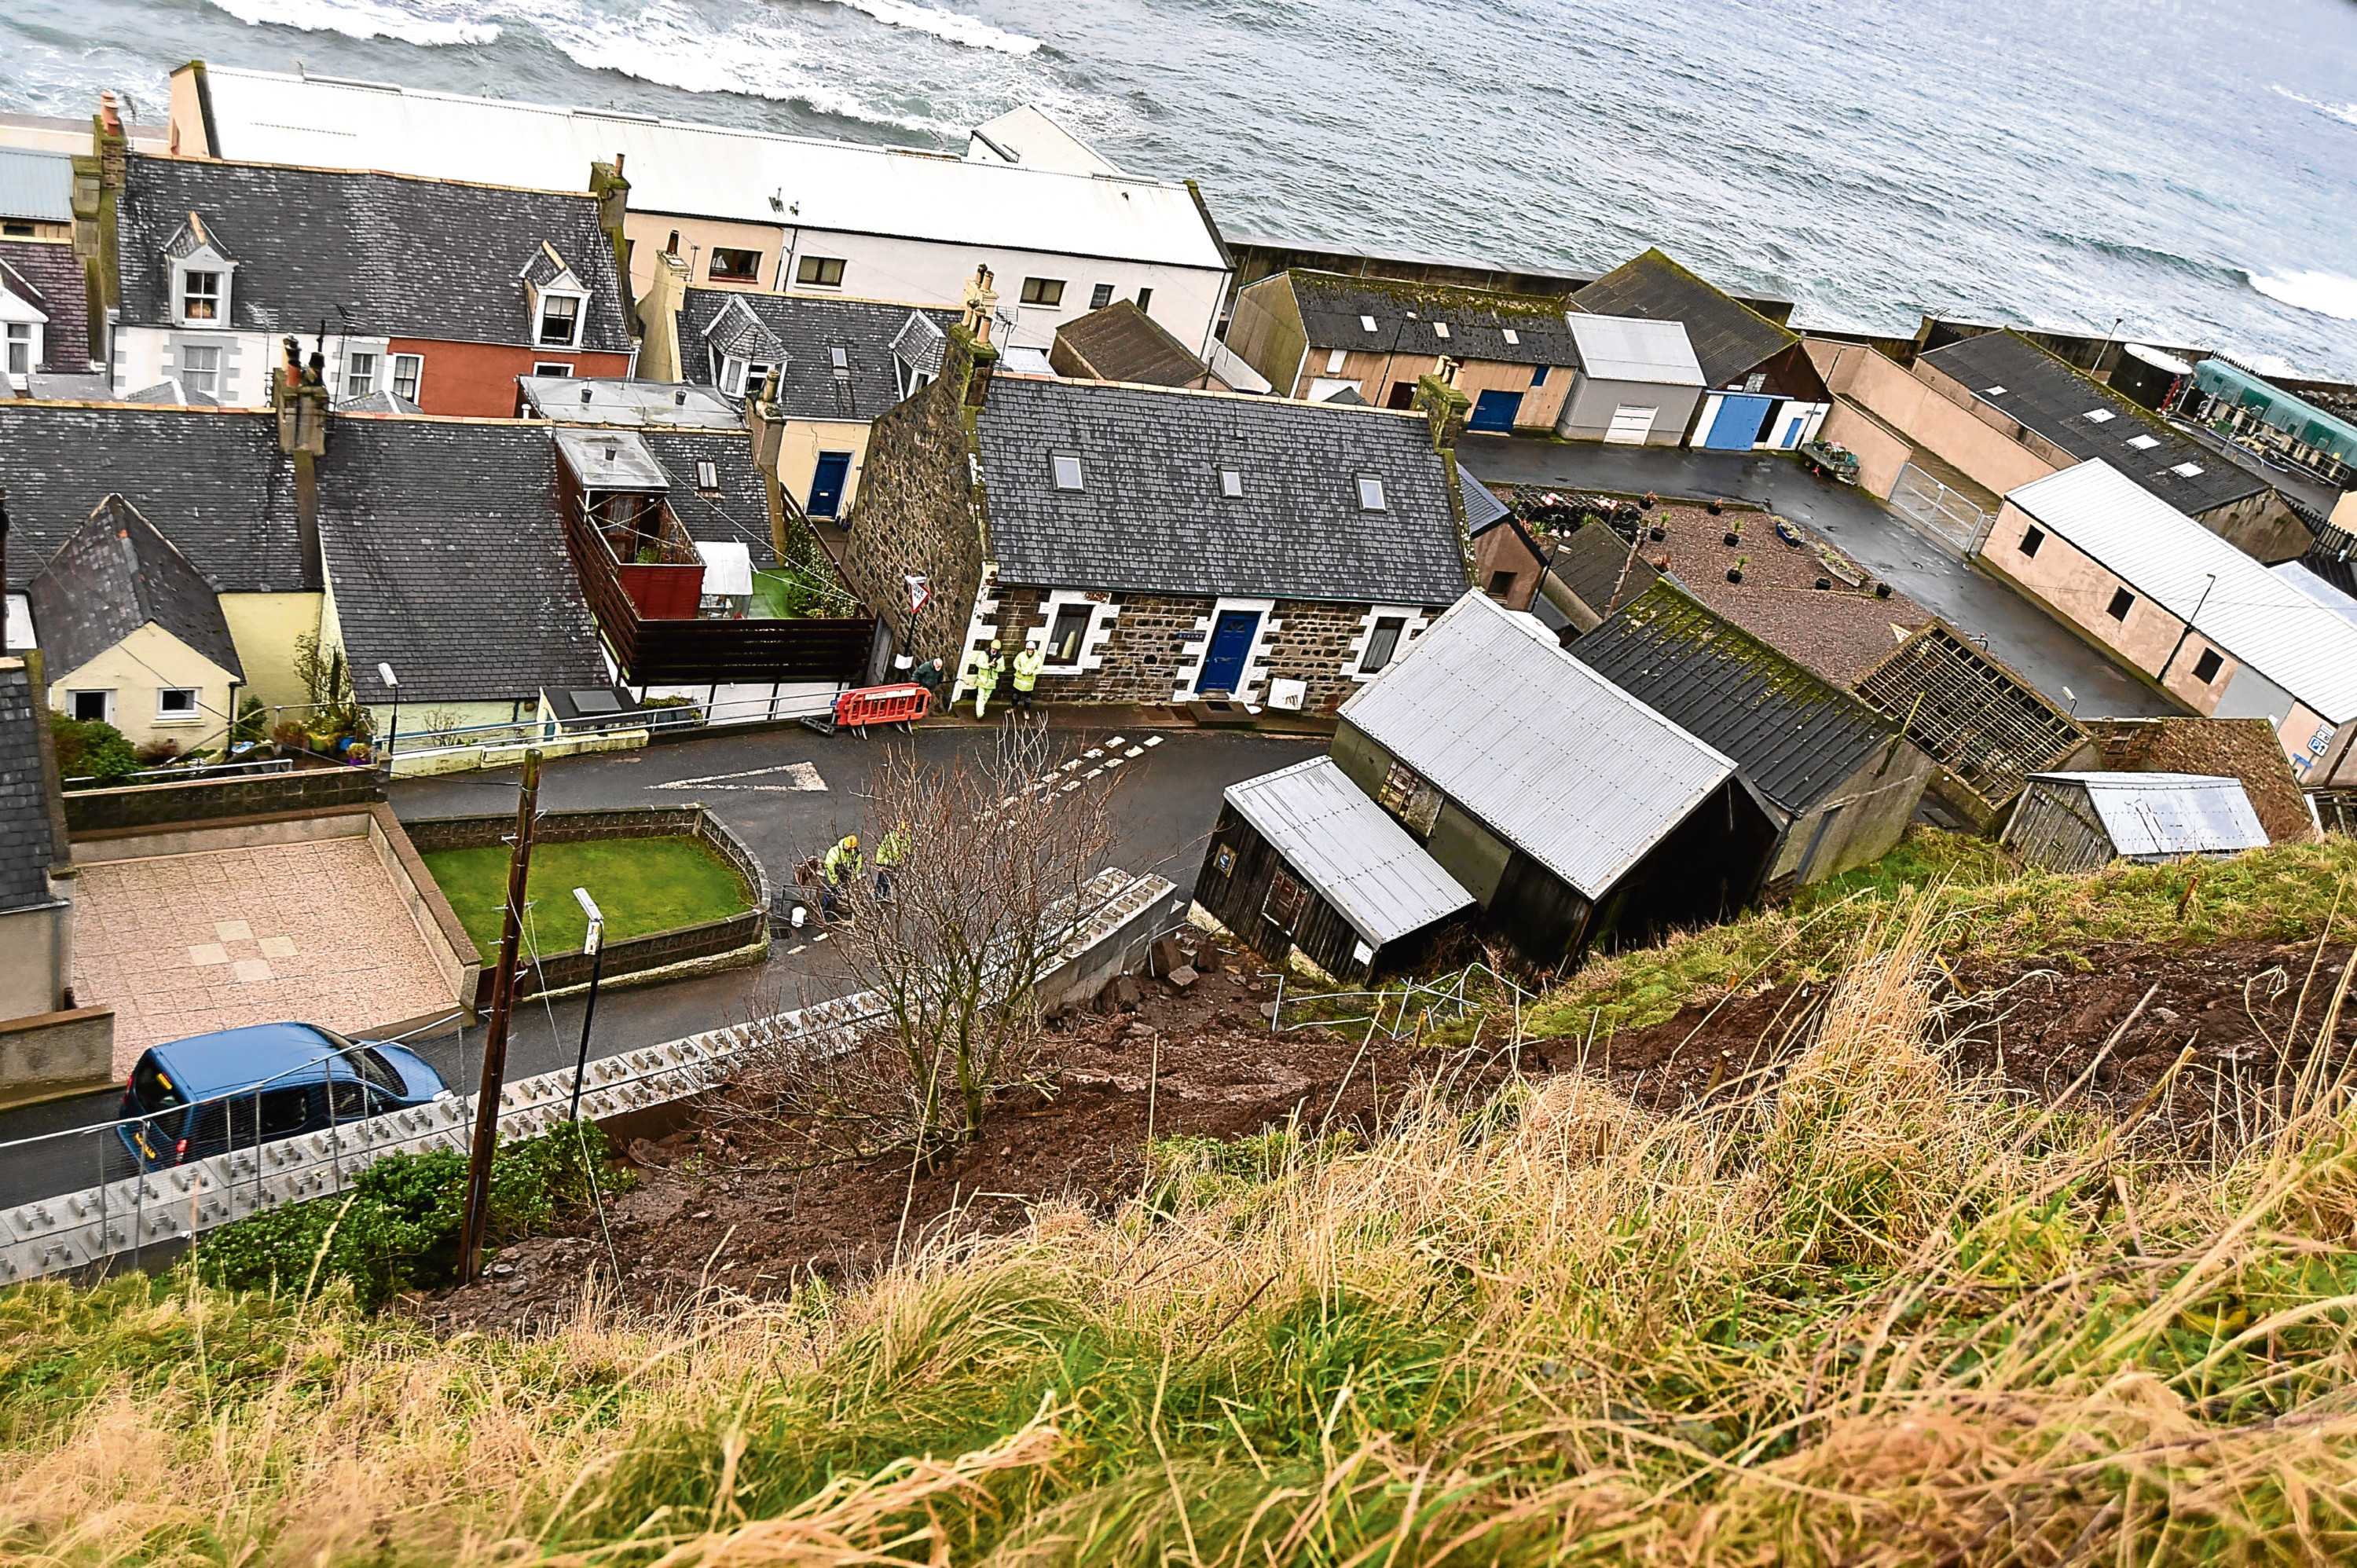 The landslide at Gardenstown.